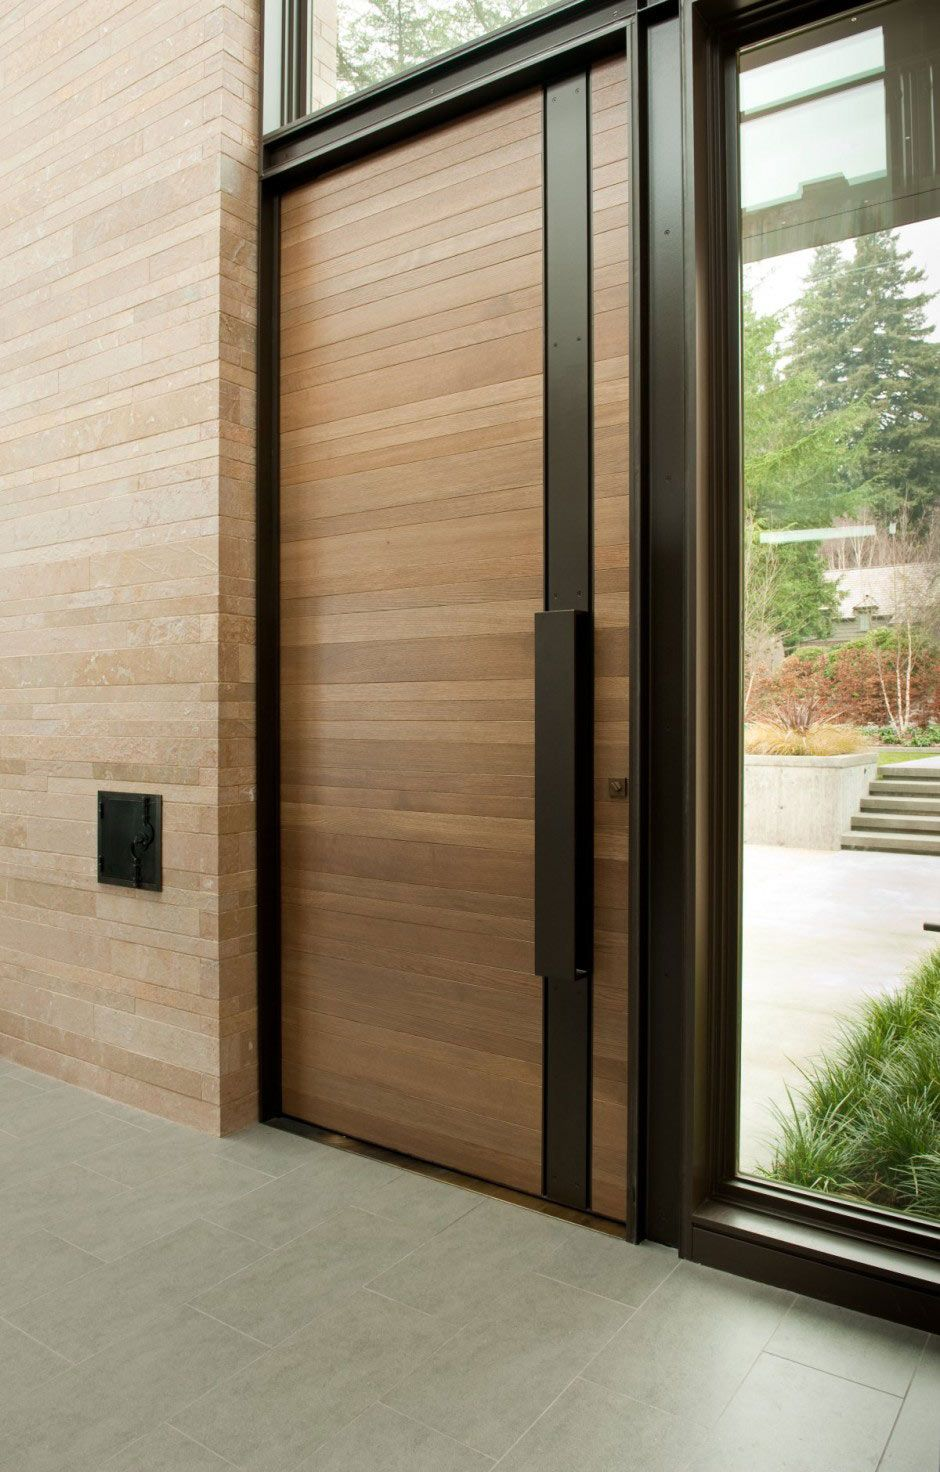 doctor doors interior design - 1000+ images about Modern & ontemporary Sliding Barn Door ...